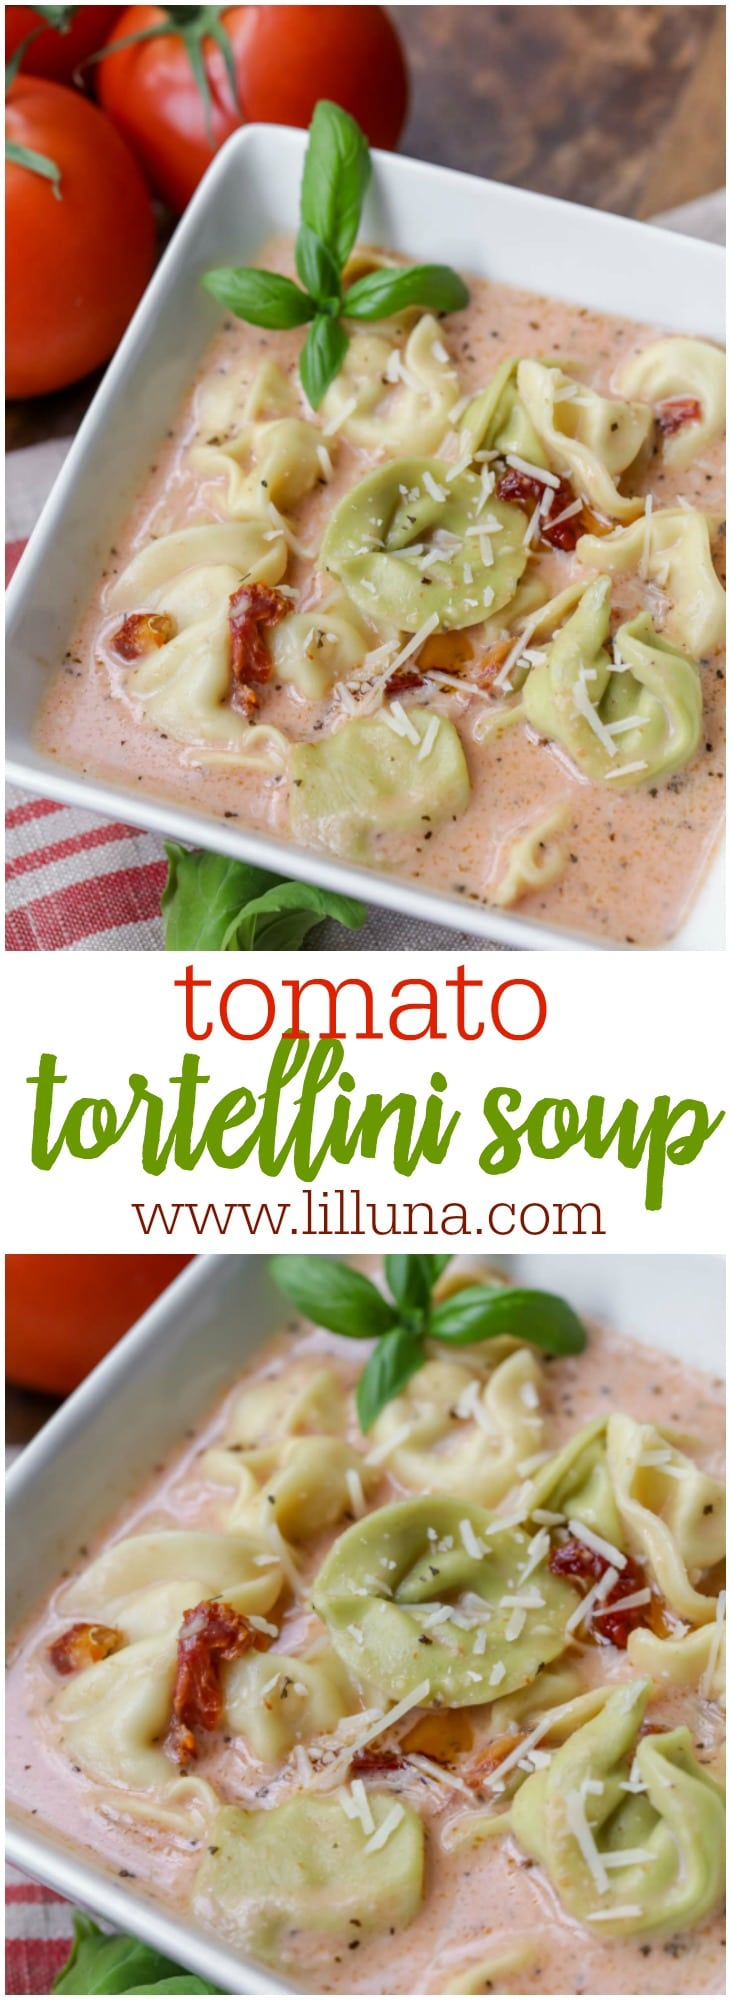 Delicious Tomato Tortellini Soup recipe - one of the best tomato recipes you'll ever try! Full of tomatoes, tortellini, cheese and flavor. Everyone loves this soup!